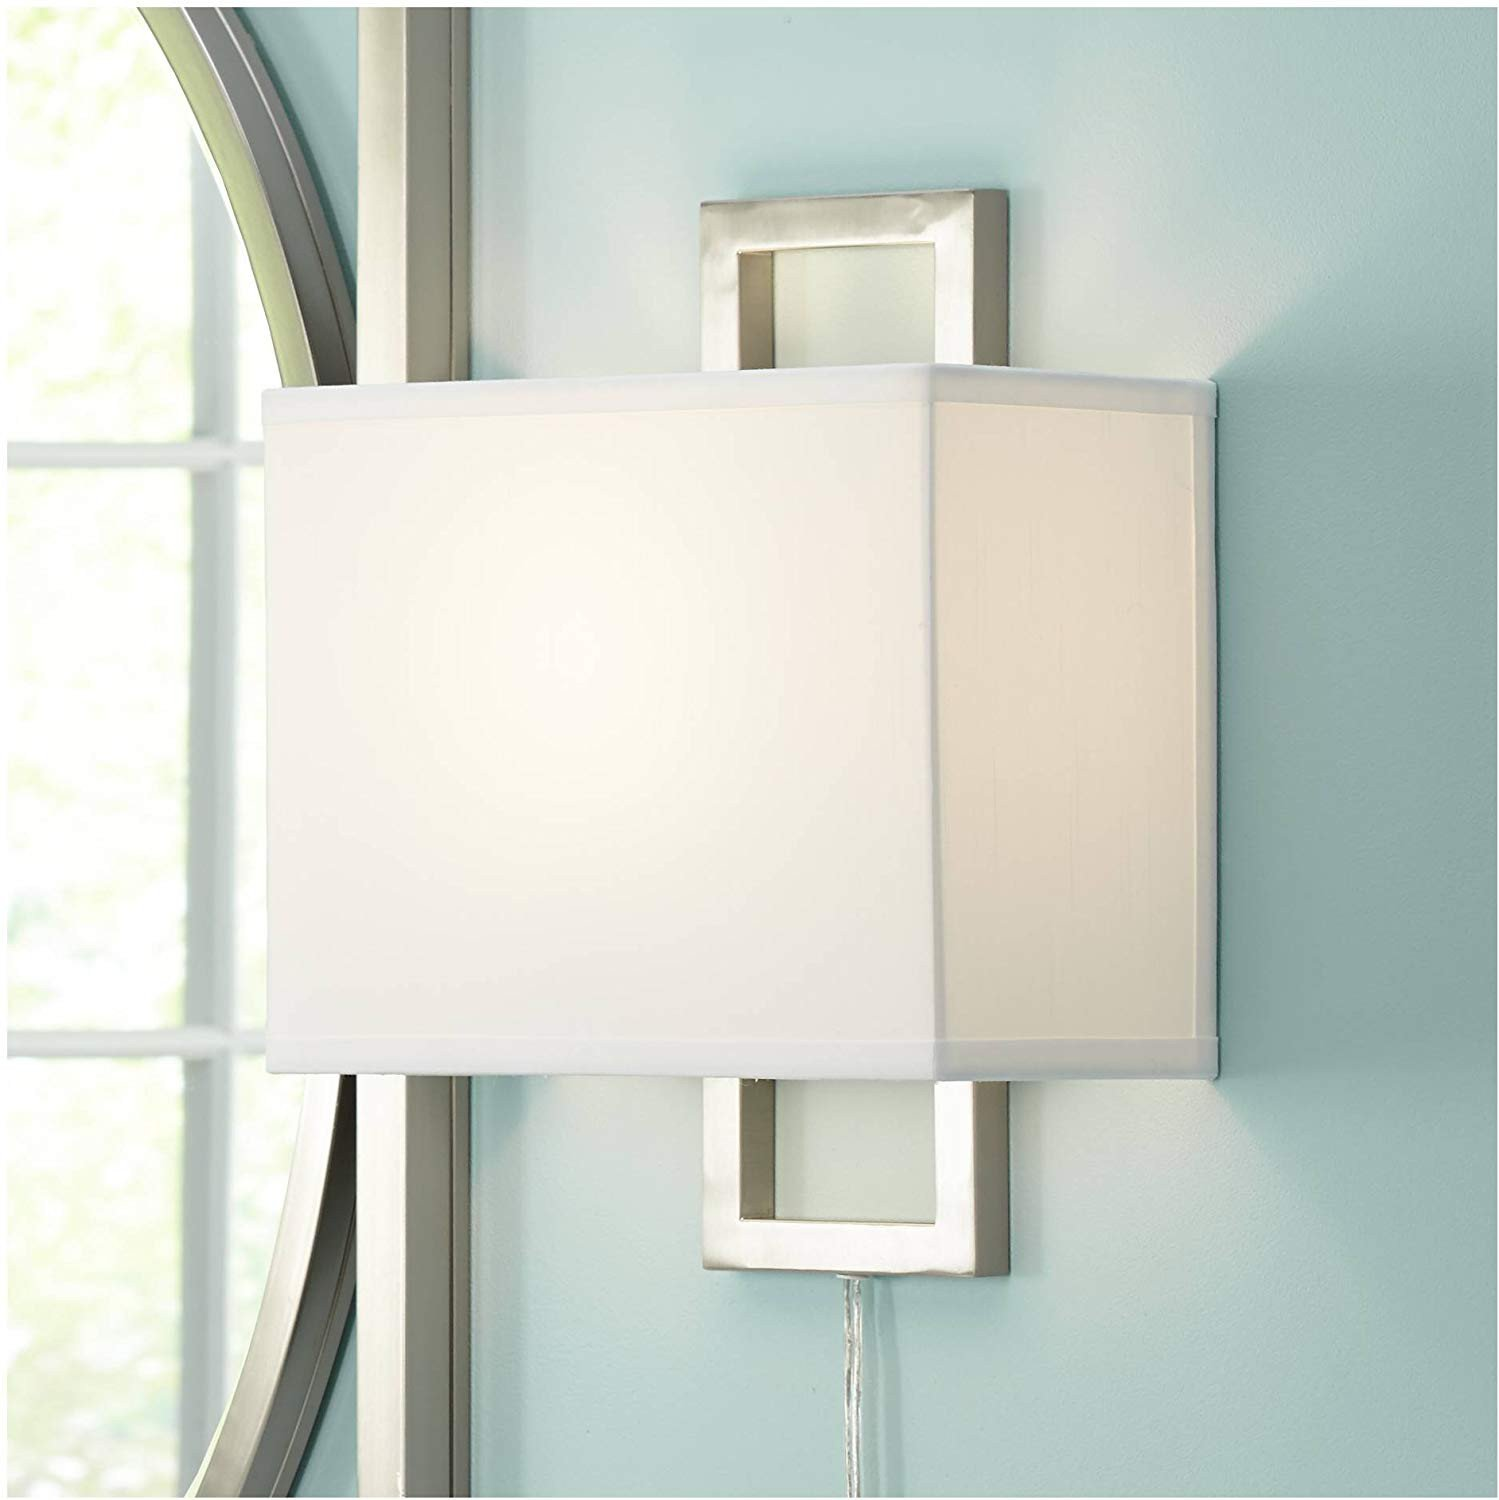 Bedroom Reading Light Wall Mounted Best Of Aundria Modern Wall Lamp Plug In Rectangular Brushed Nickel White Shade for Living Room Bedroom Reading Possini Euro Design